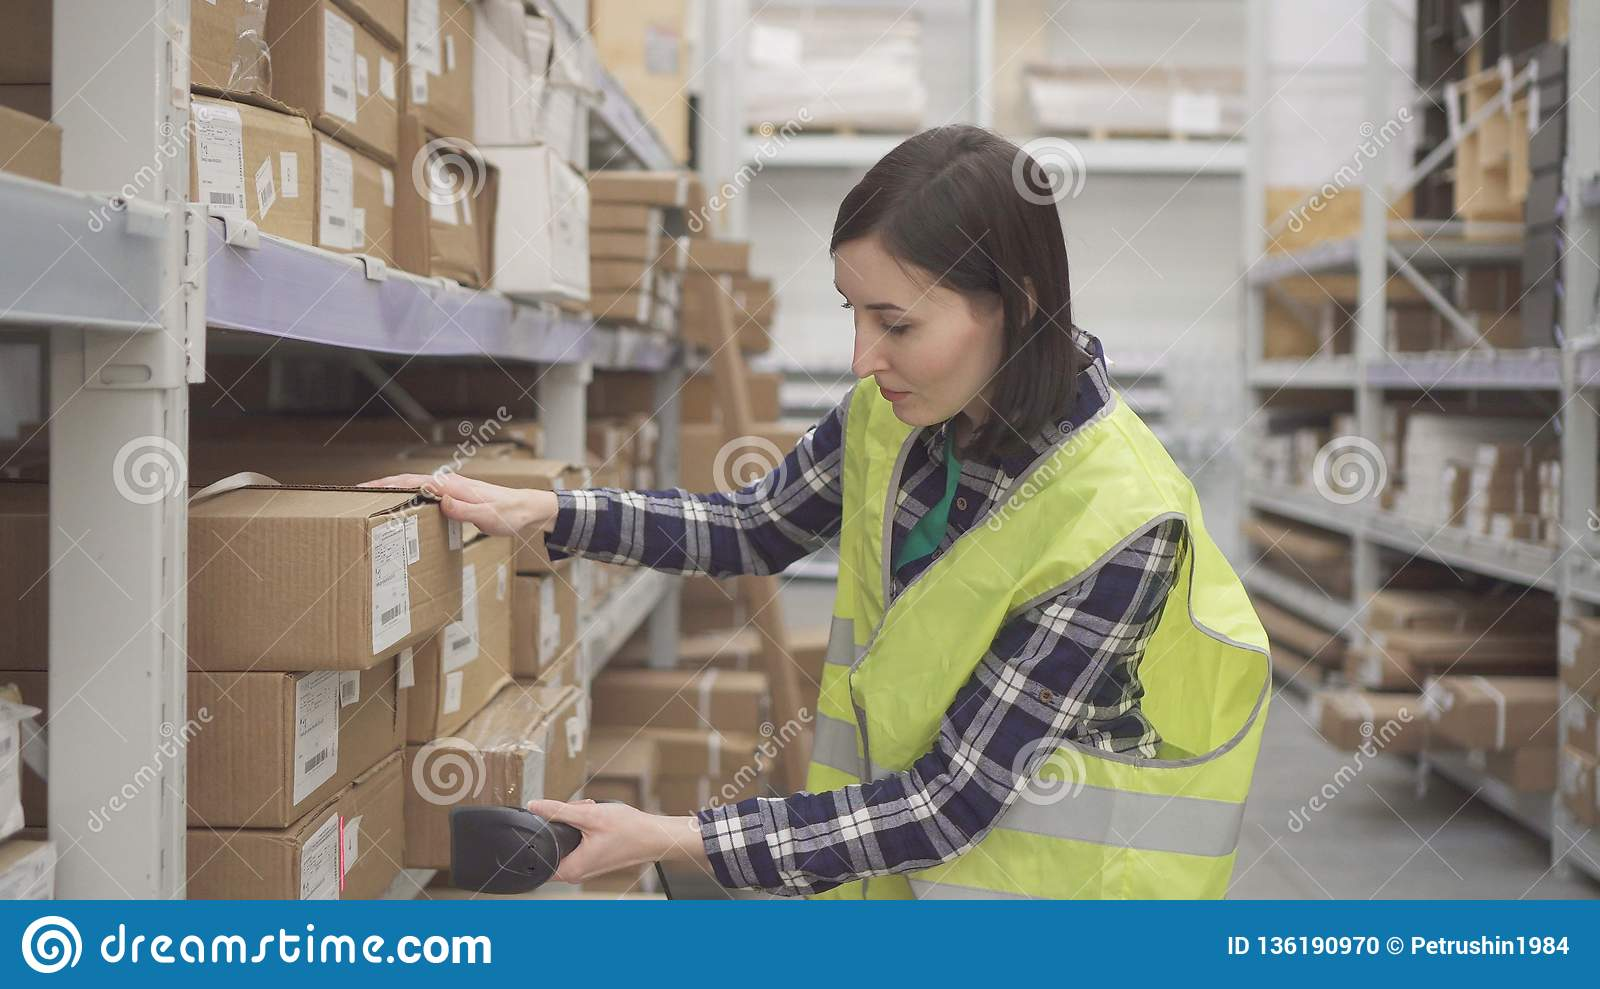 Accounting Of Goods In The Warehouse With Barcode Scanner